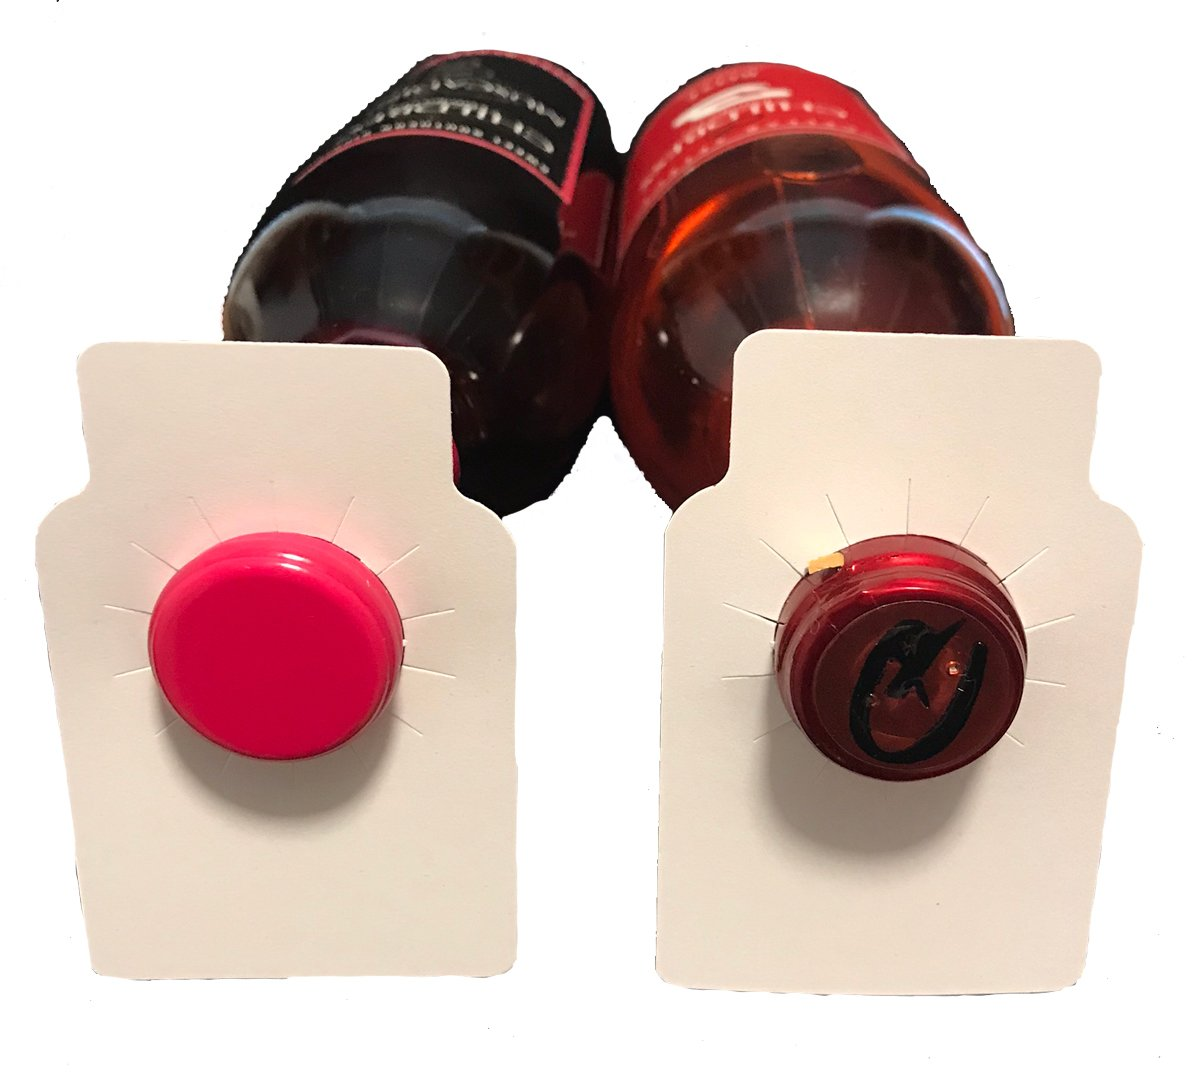 Blank wine bottle paper hang tags - 220 pieces - made in USA by Memory Cross (Image #1)